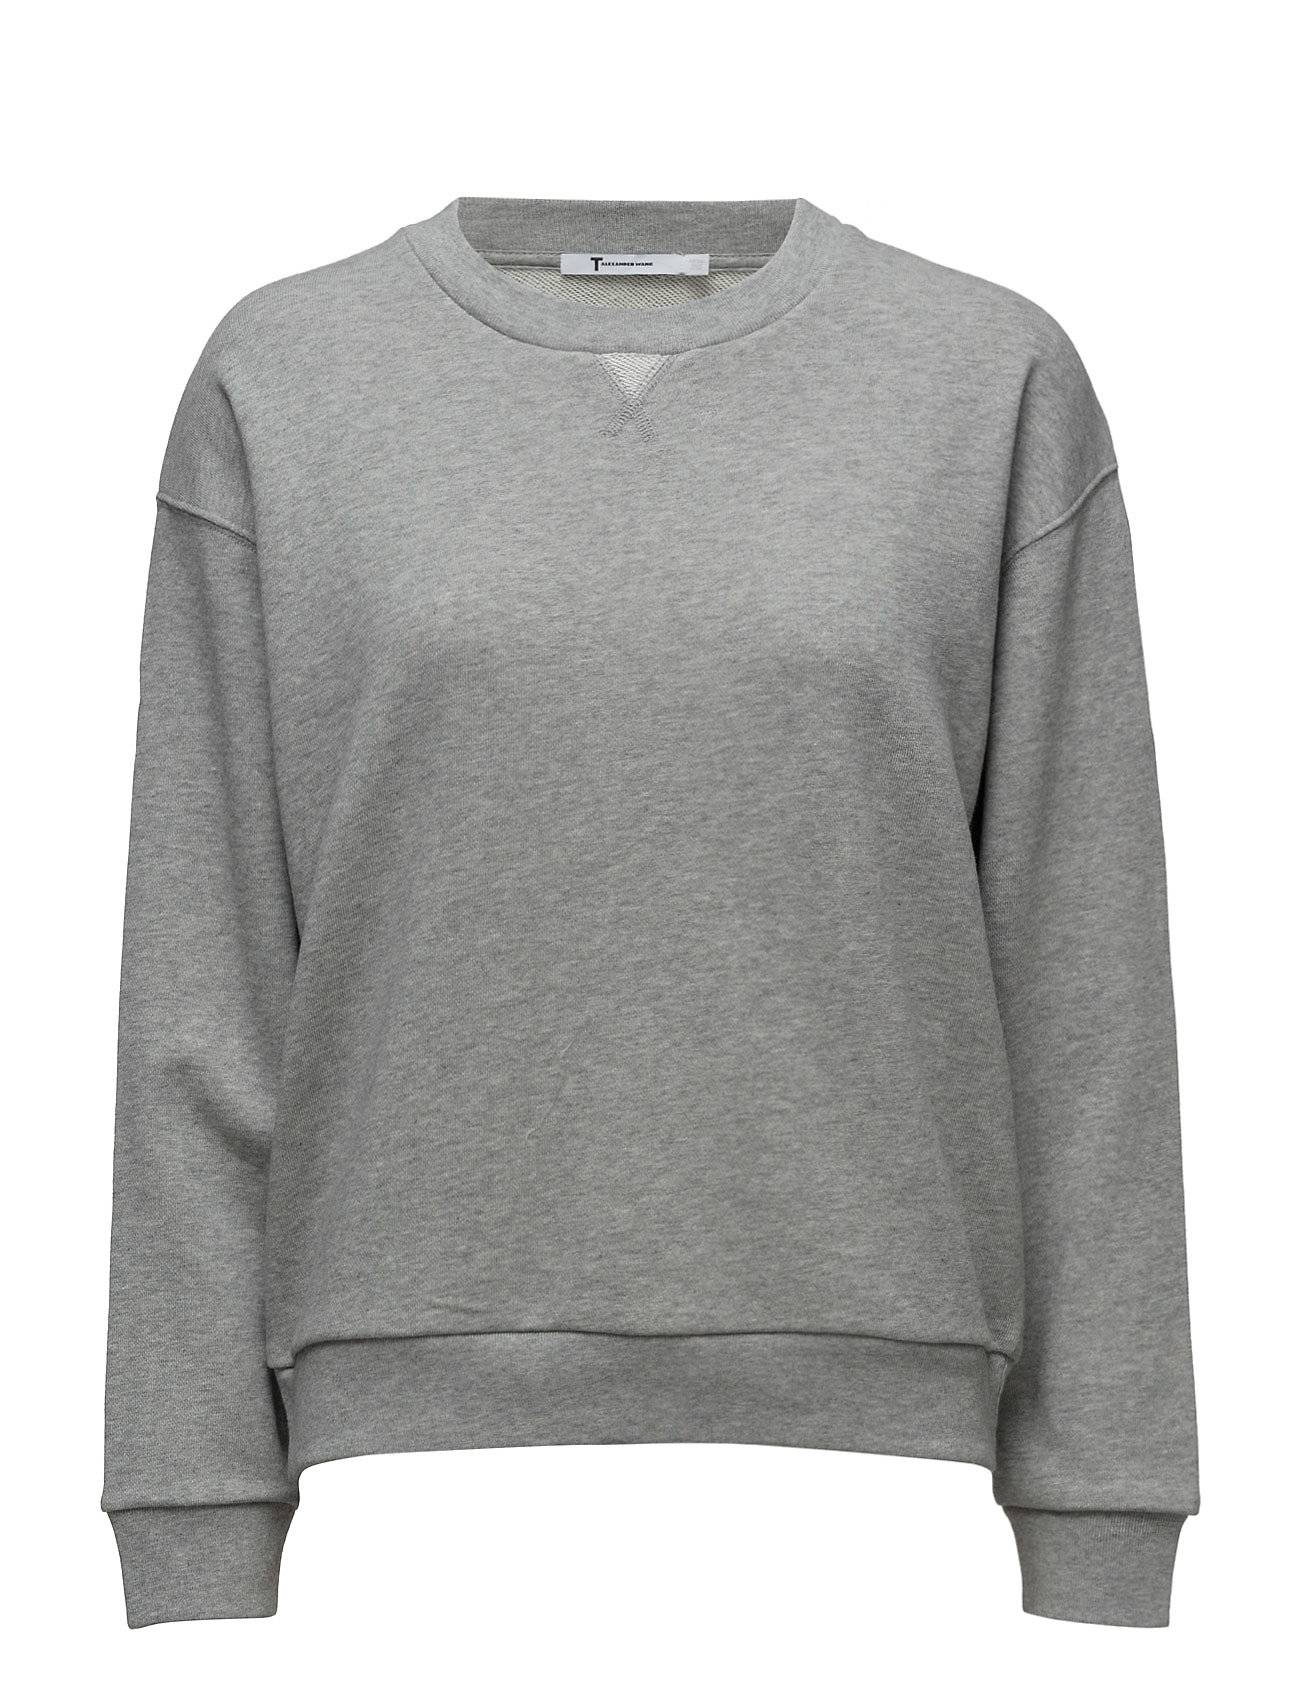 T by Alexander Wang Soft French Terry Sweatshirt